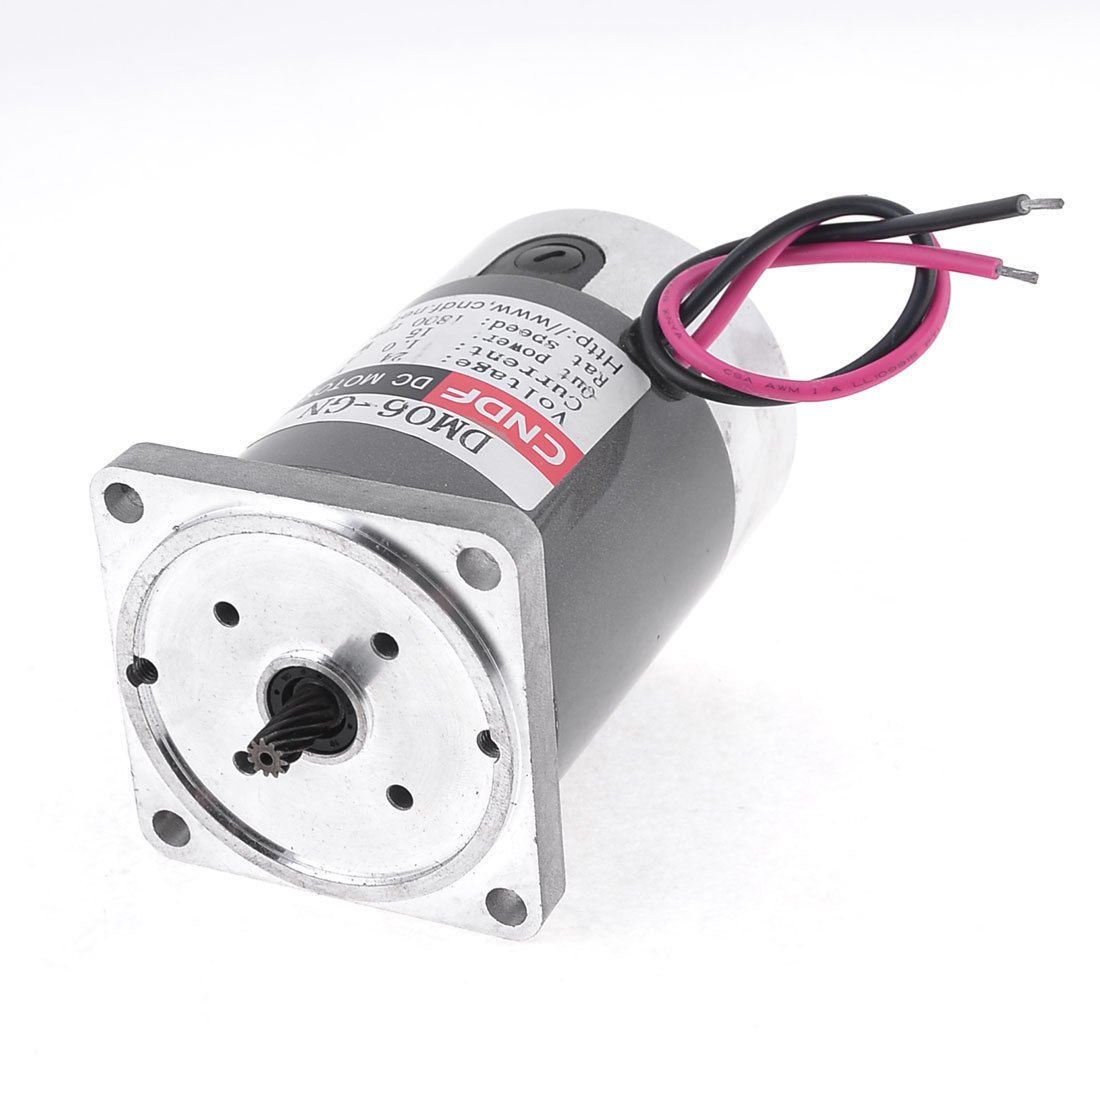 DC 24V 1800RPM High Torque Speed Reducing Gearbox Geared Motor